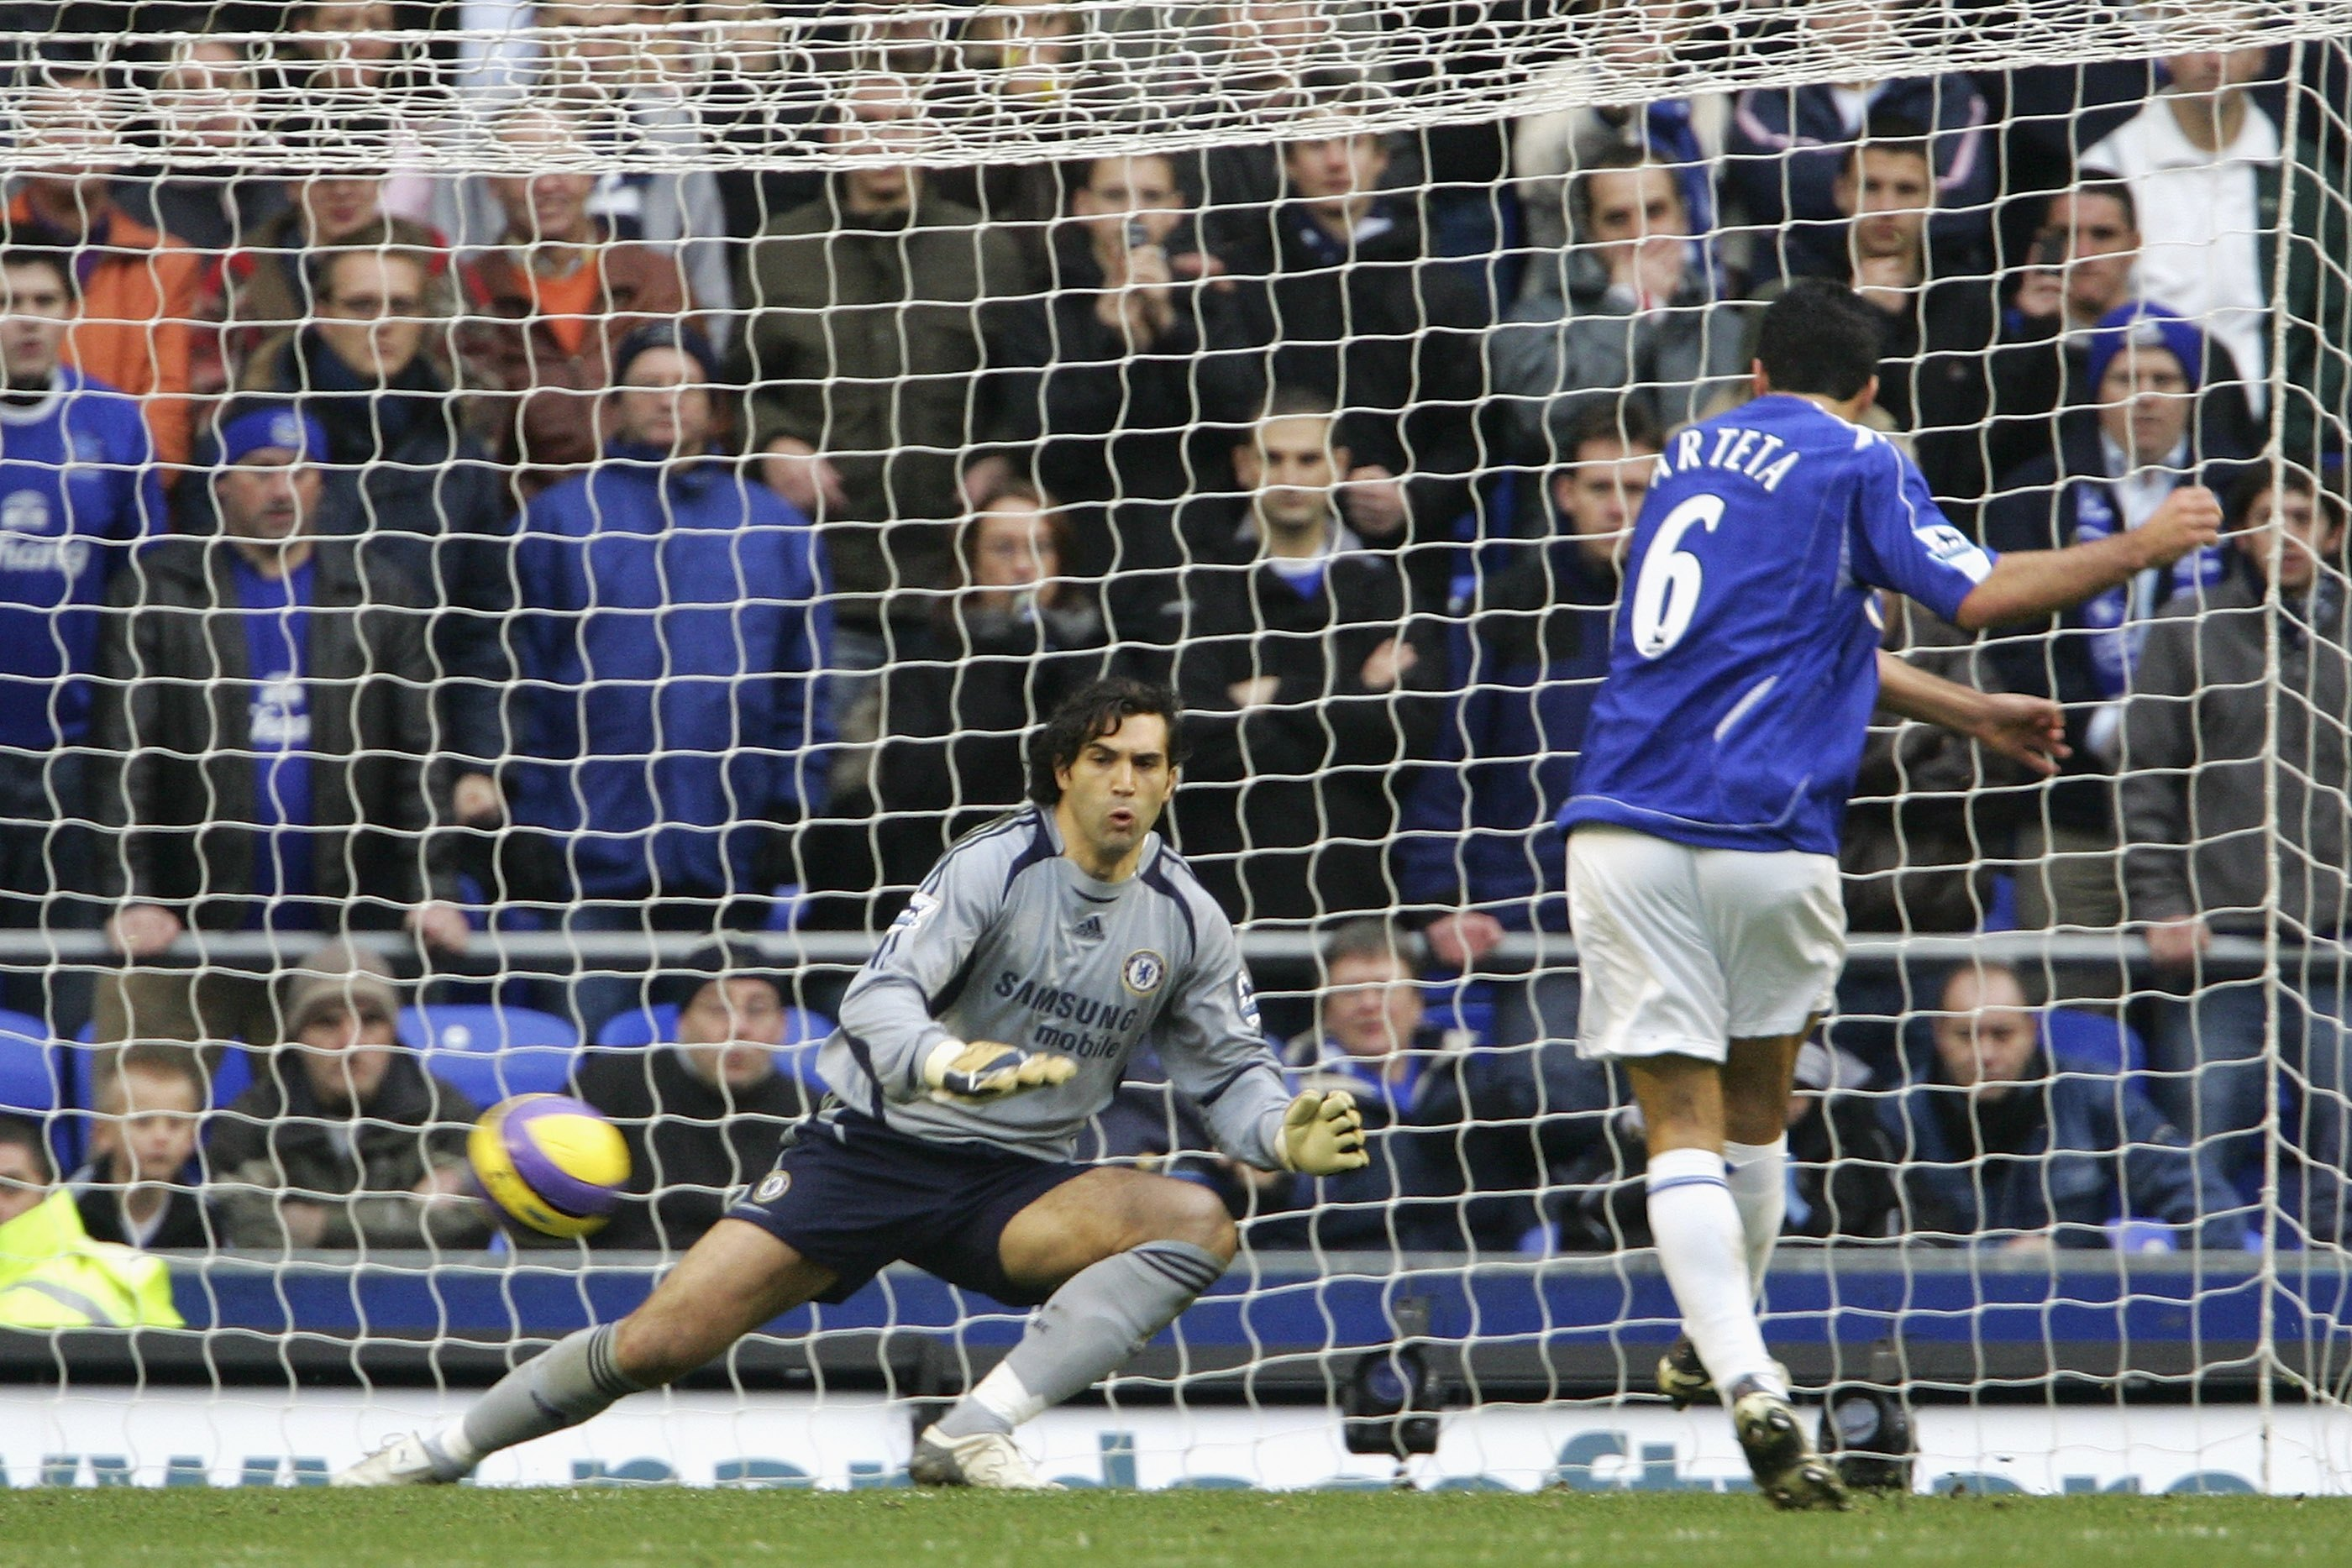 Arteta slots home the penalty